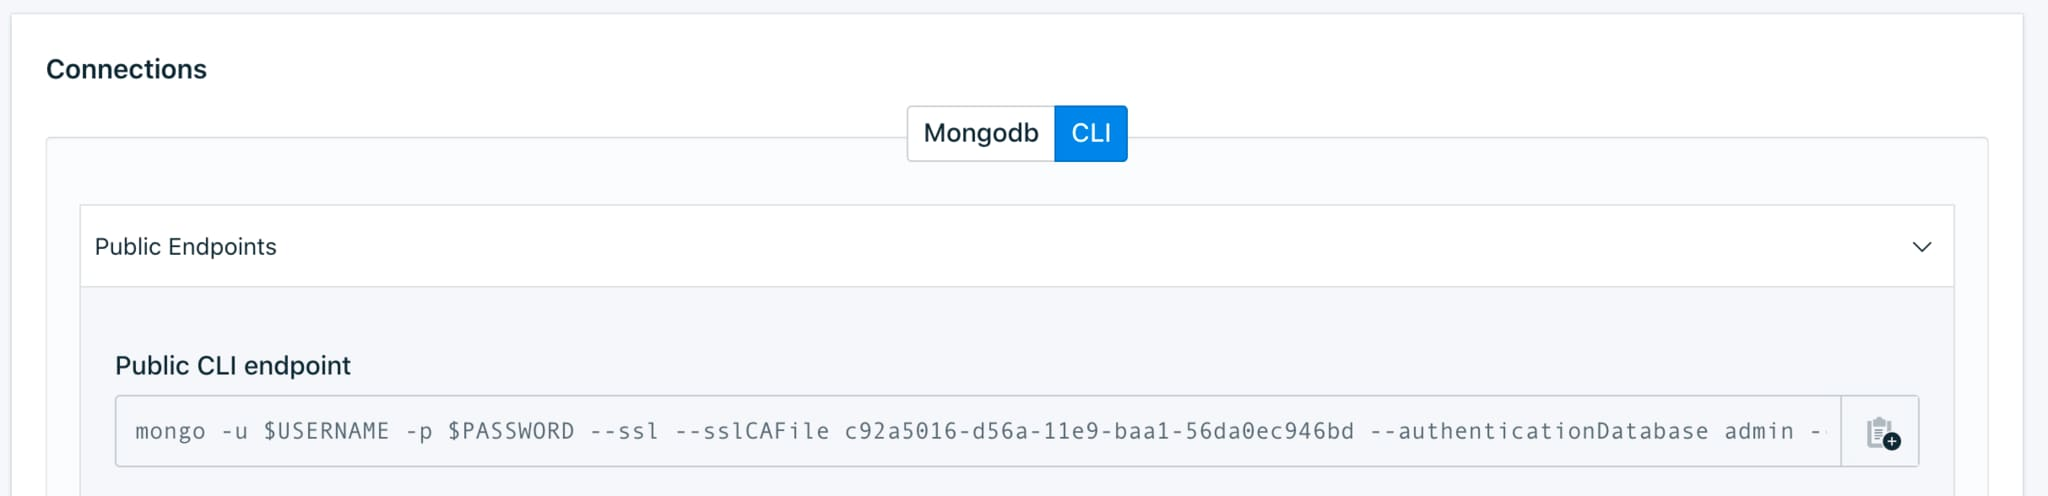 You can find this information in the Connections panel of your MongoDB deployment on the IBM Cloud UI.